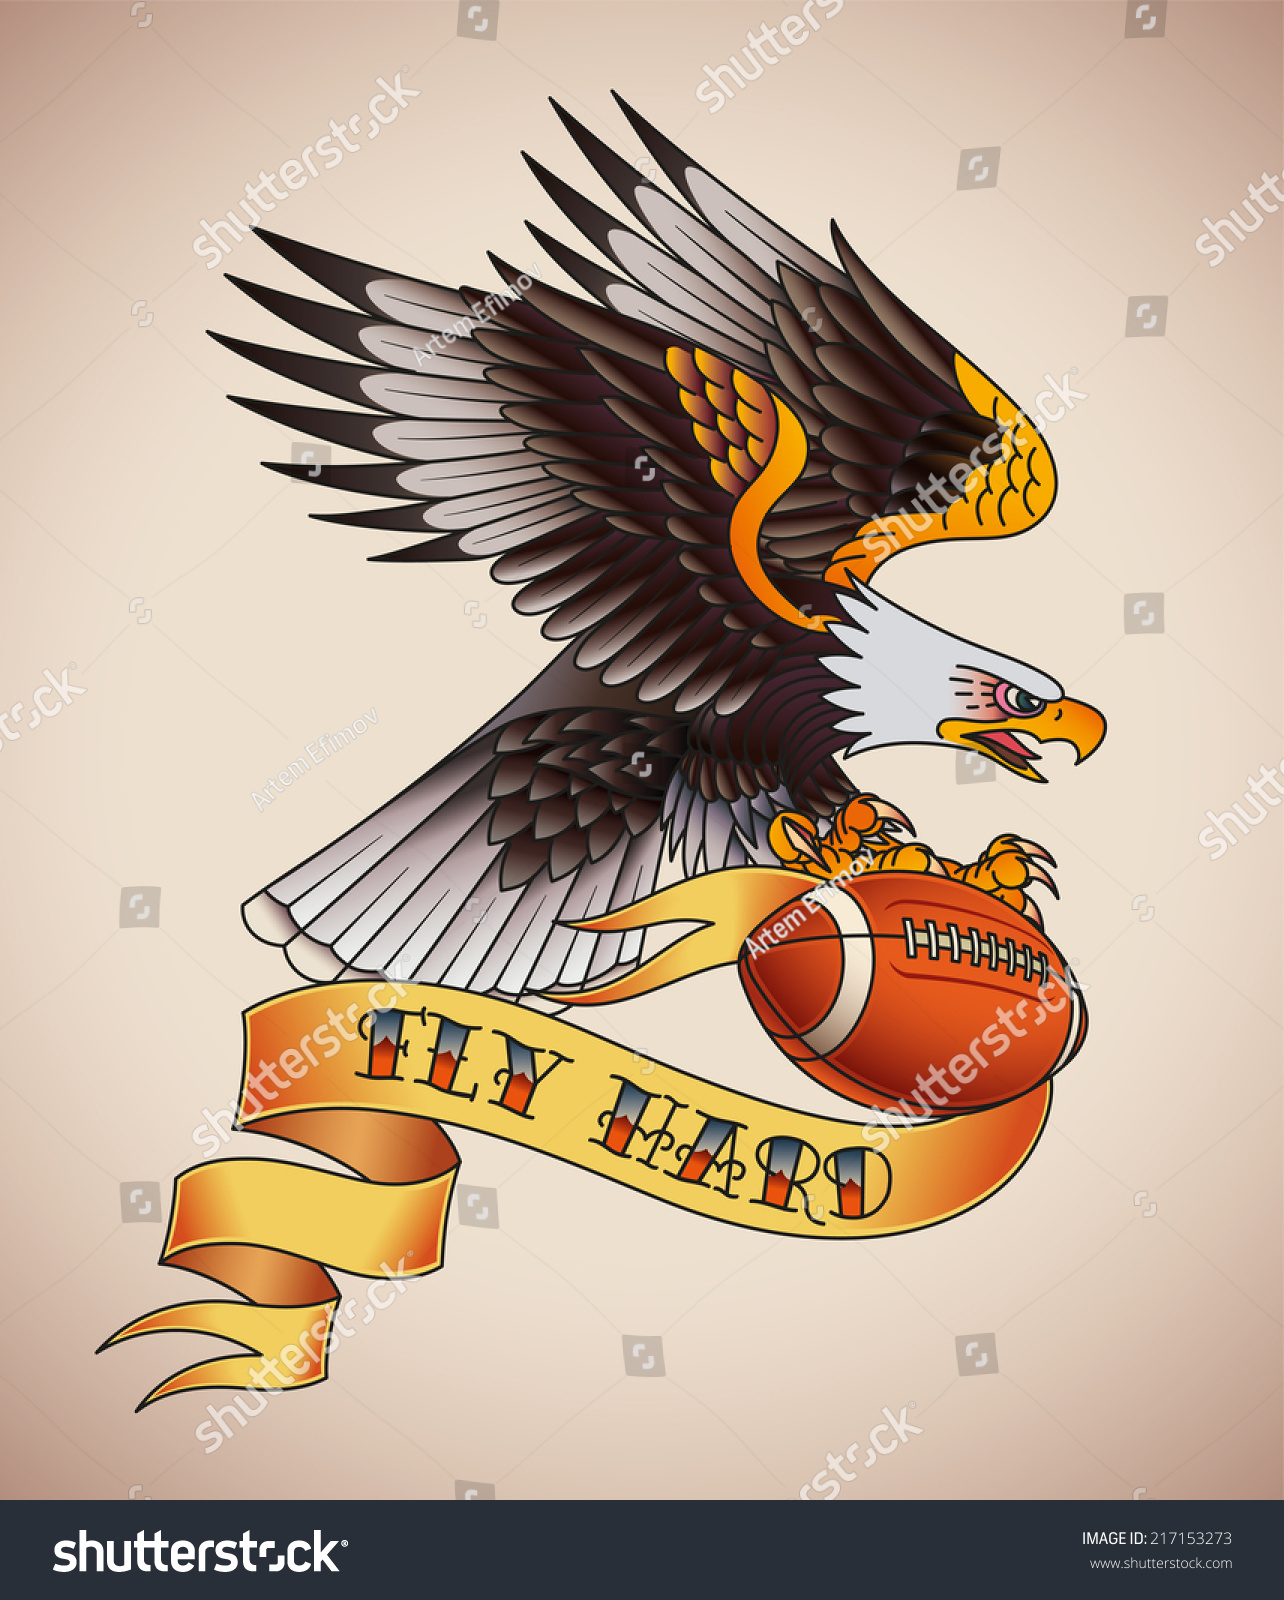 american football tattoo design of an eagle with a leather ball in its claws raster. Black Bedroom Furniture Sets. Home Design Ideas